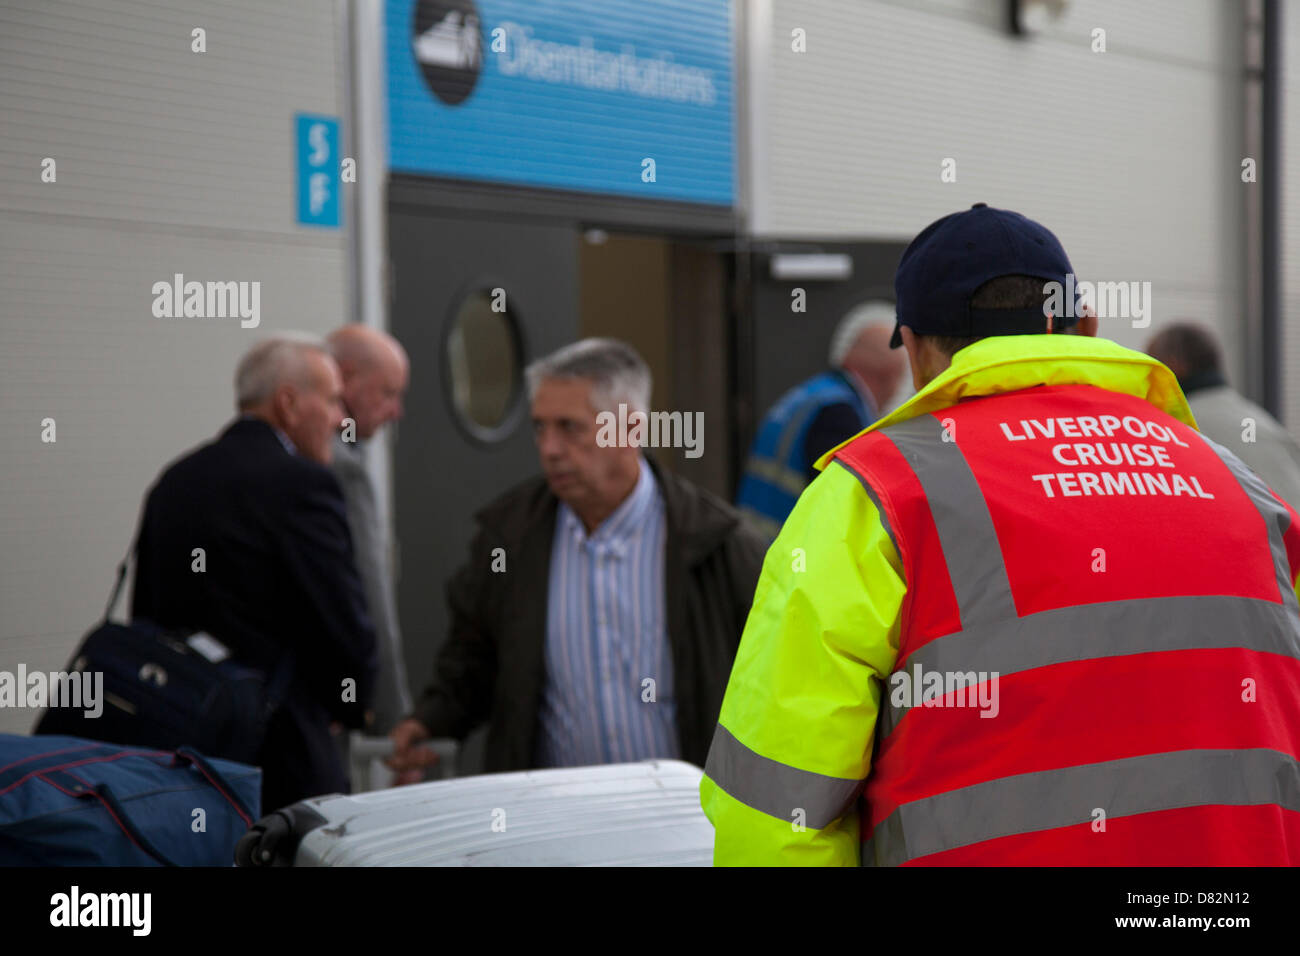 Liverpool, UK 17th May, 2013. Loading suitcases at Cruise Liner Terminal where the Passenger ship registered in - Stock Image